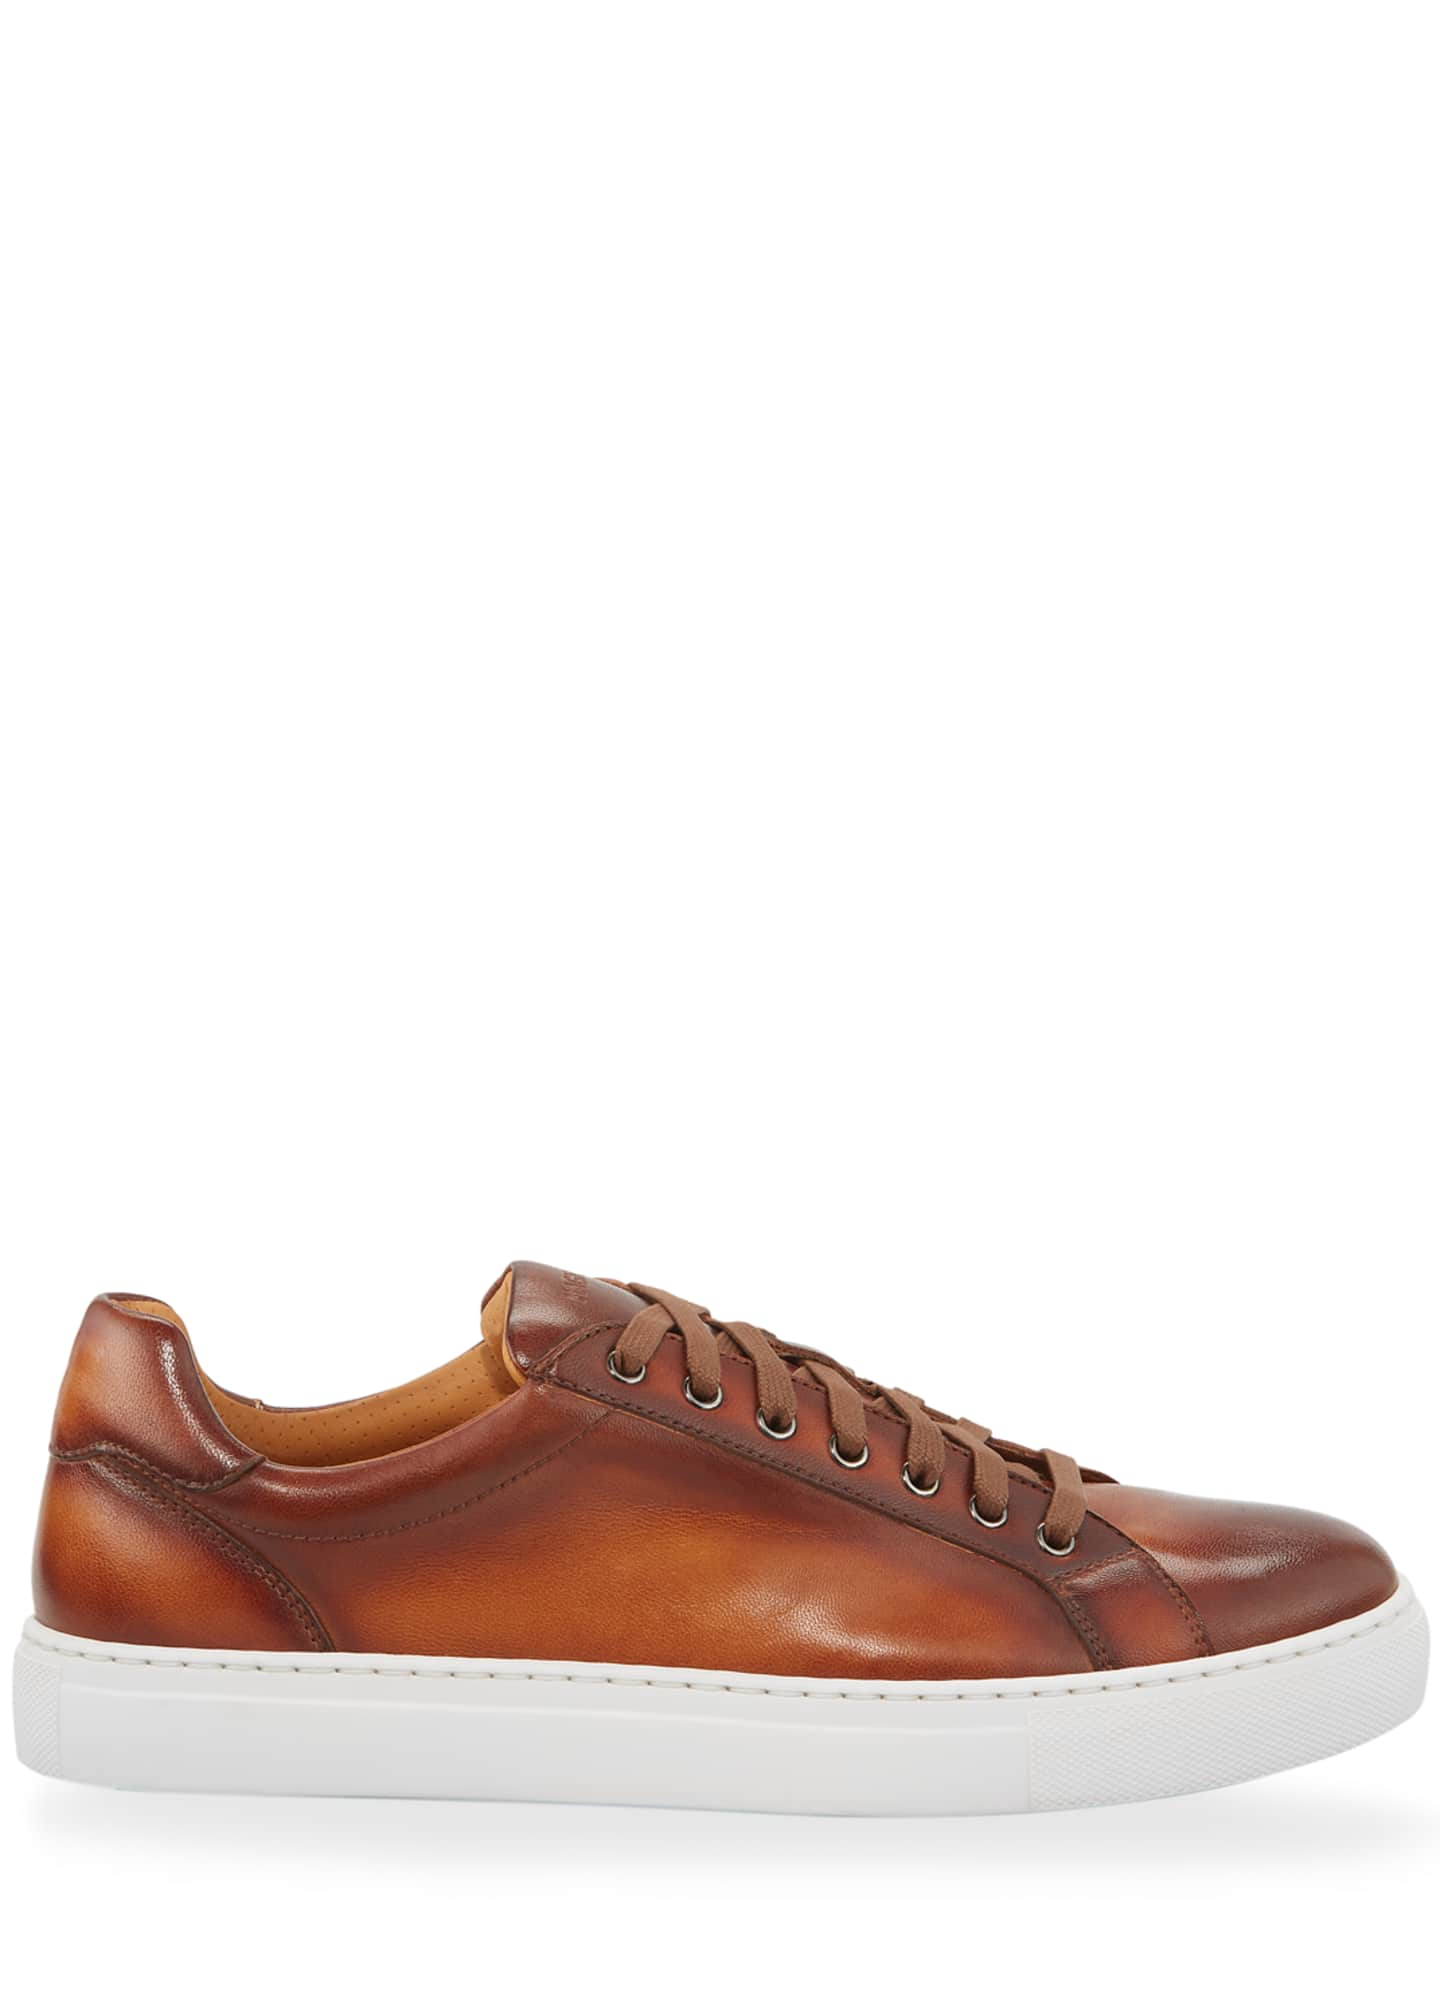 Image 2 of 3: Men's Napa Leather Low-Top Sneakers